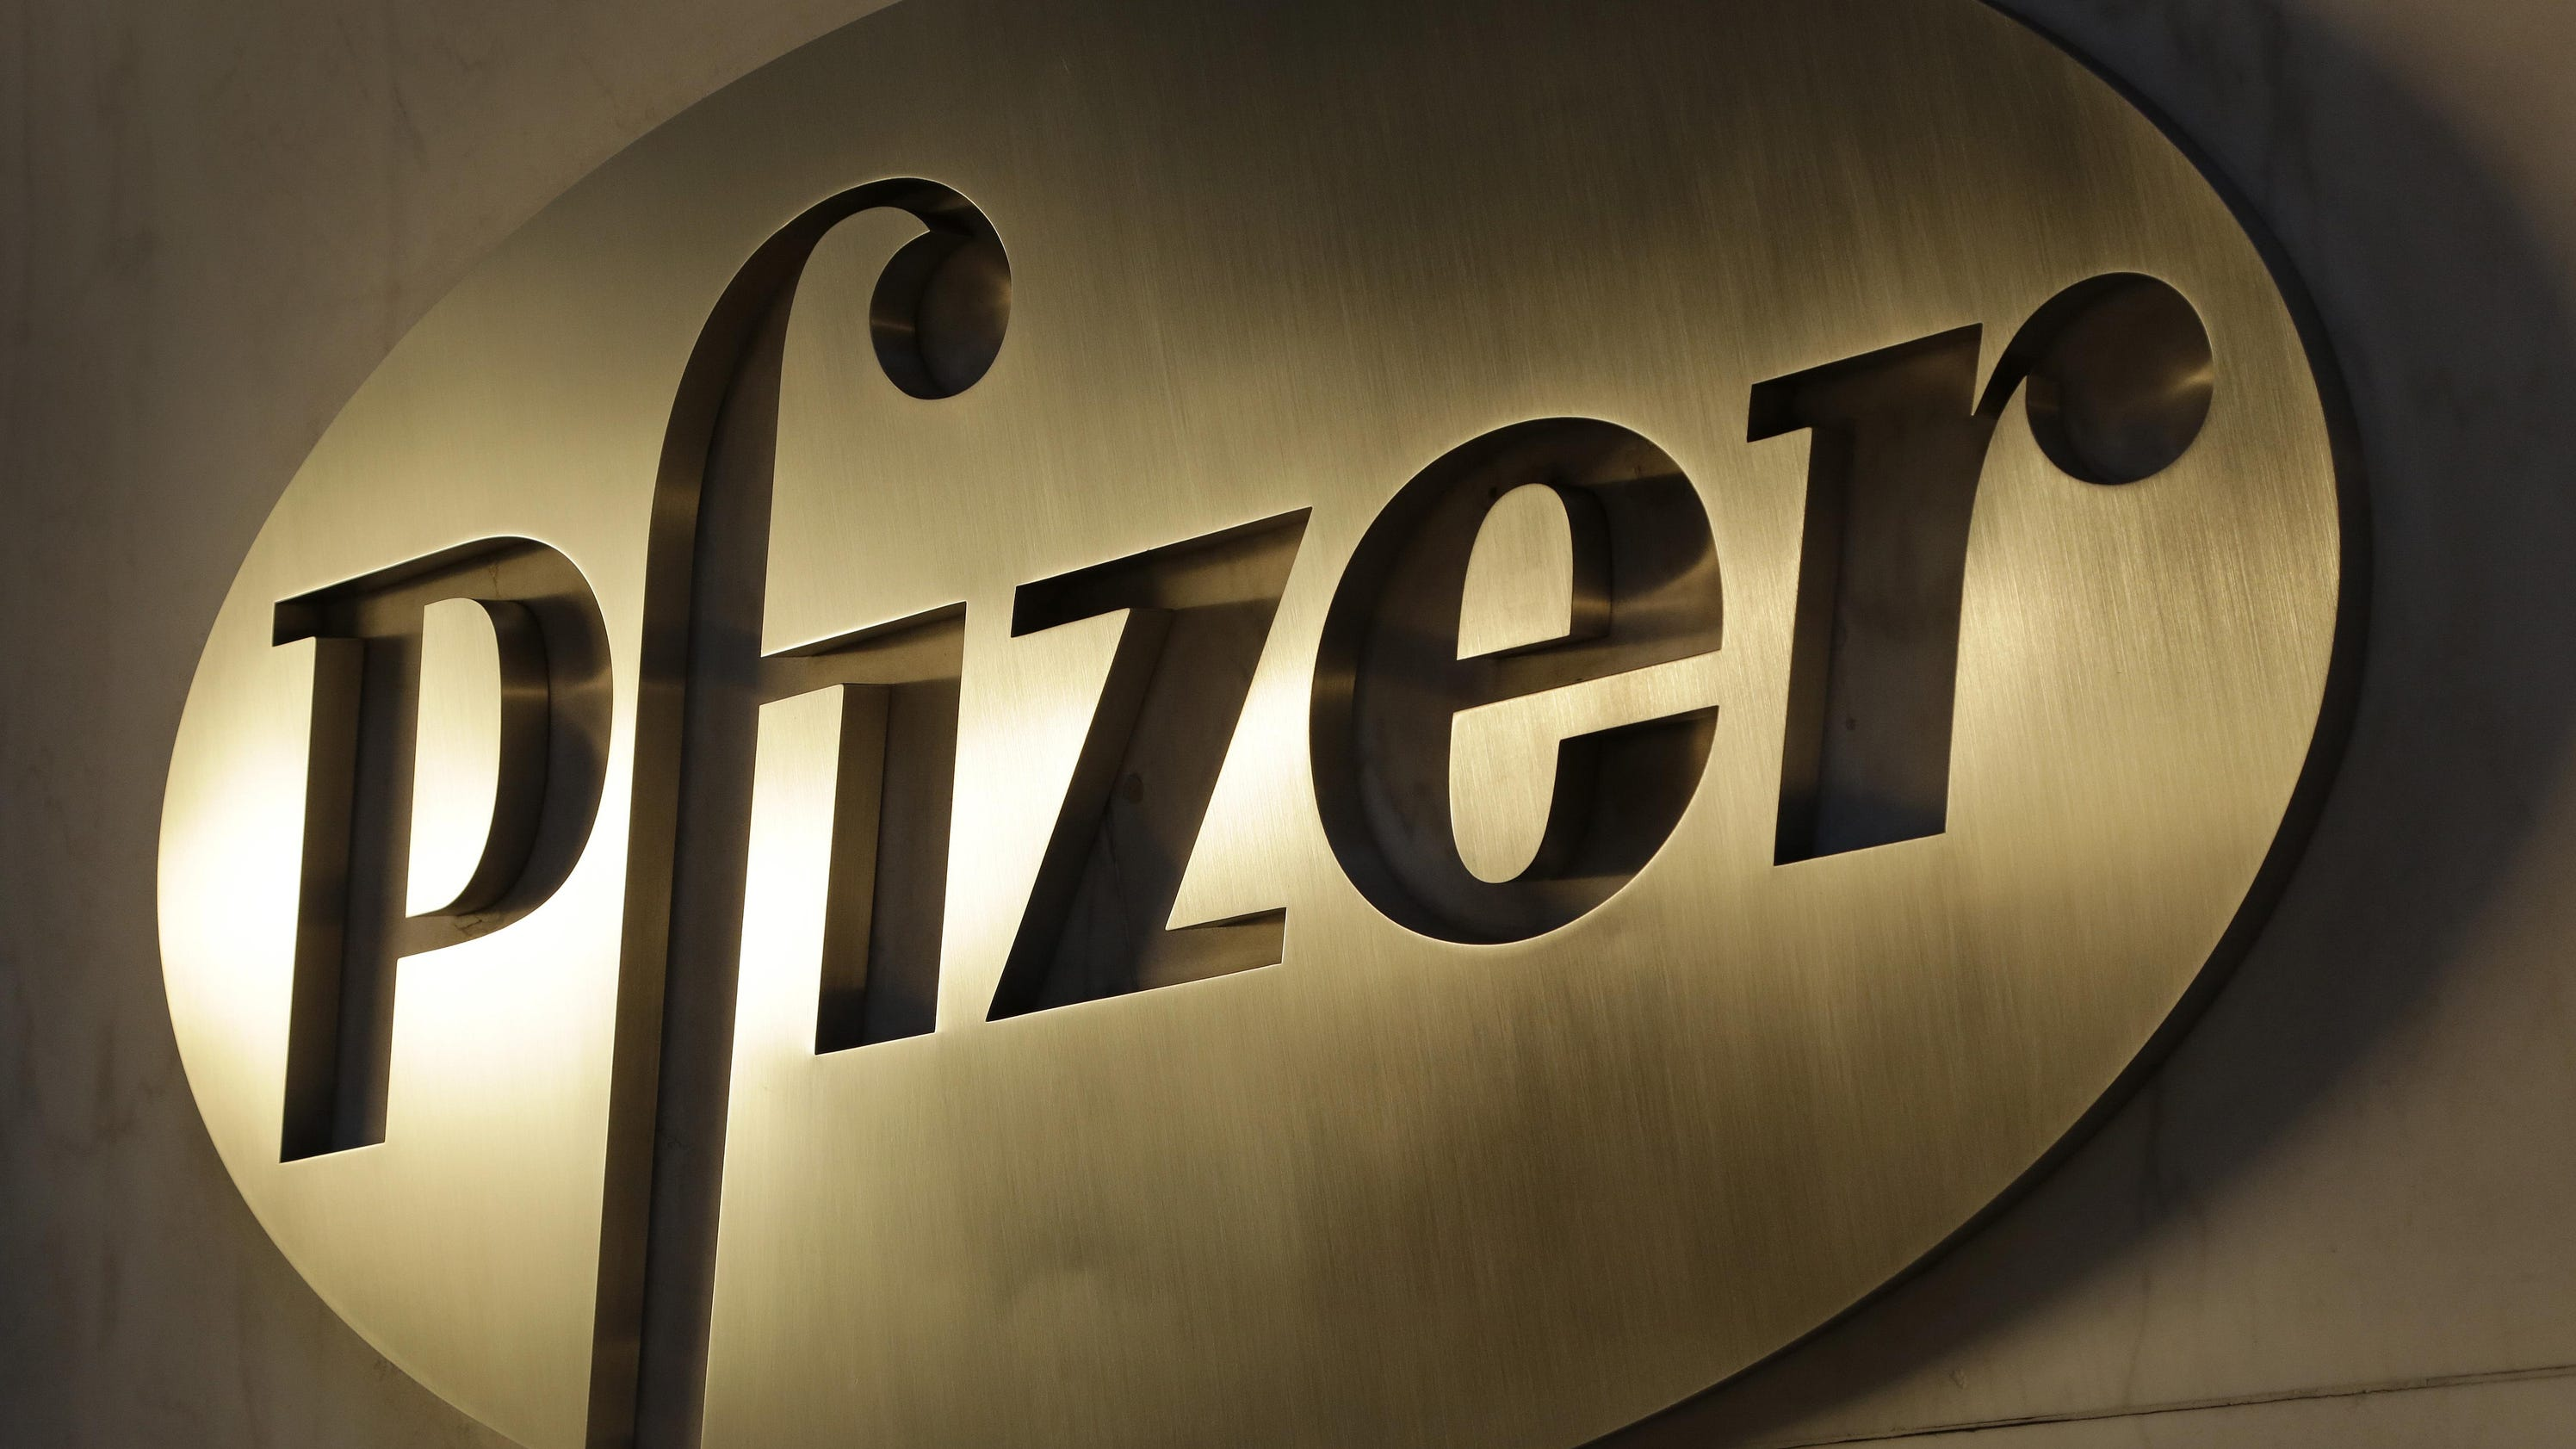 Pfizer opts not to split into two companies